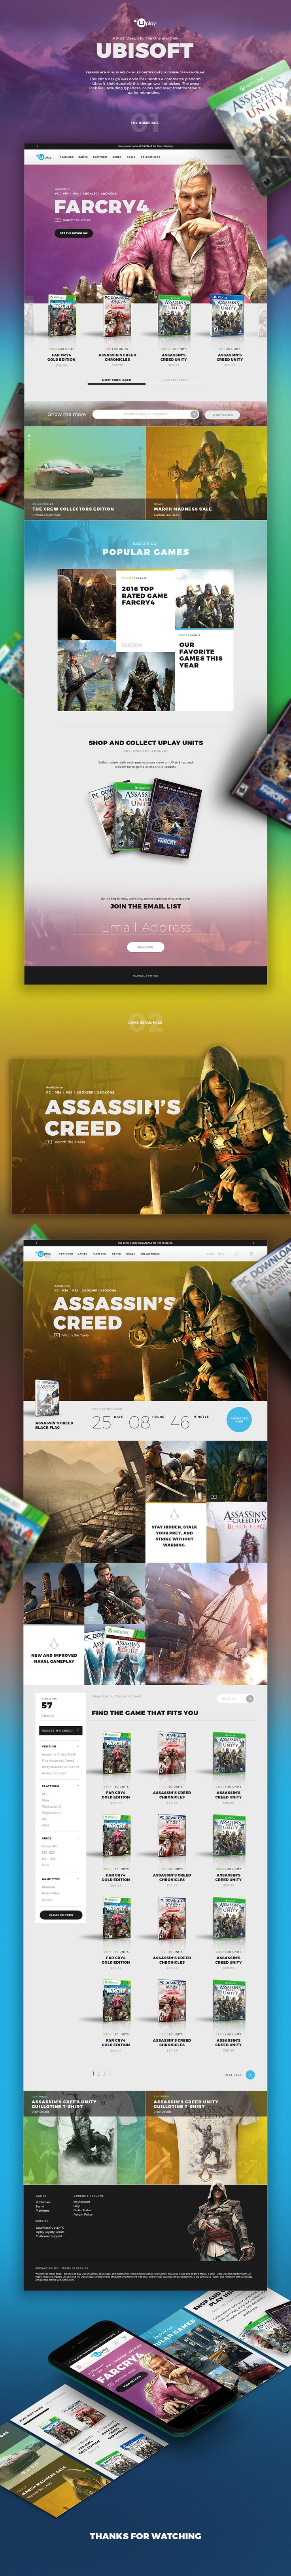 Ubisoft Web Design on Behance